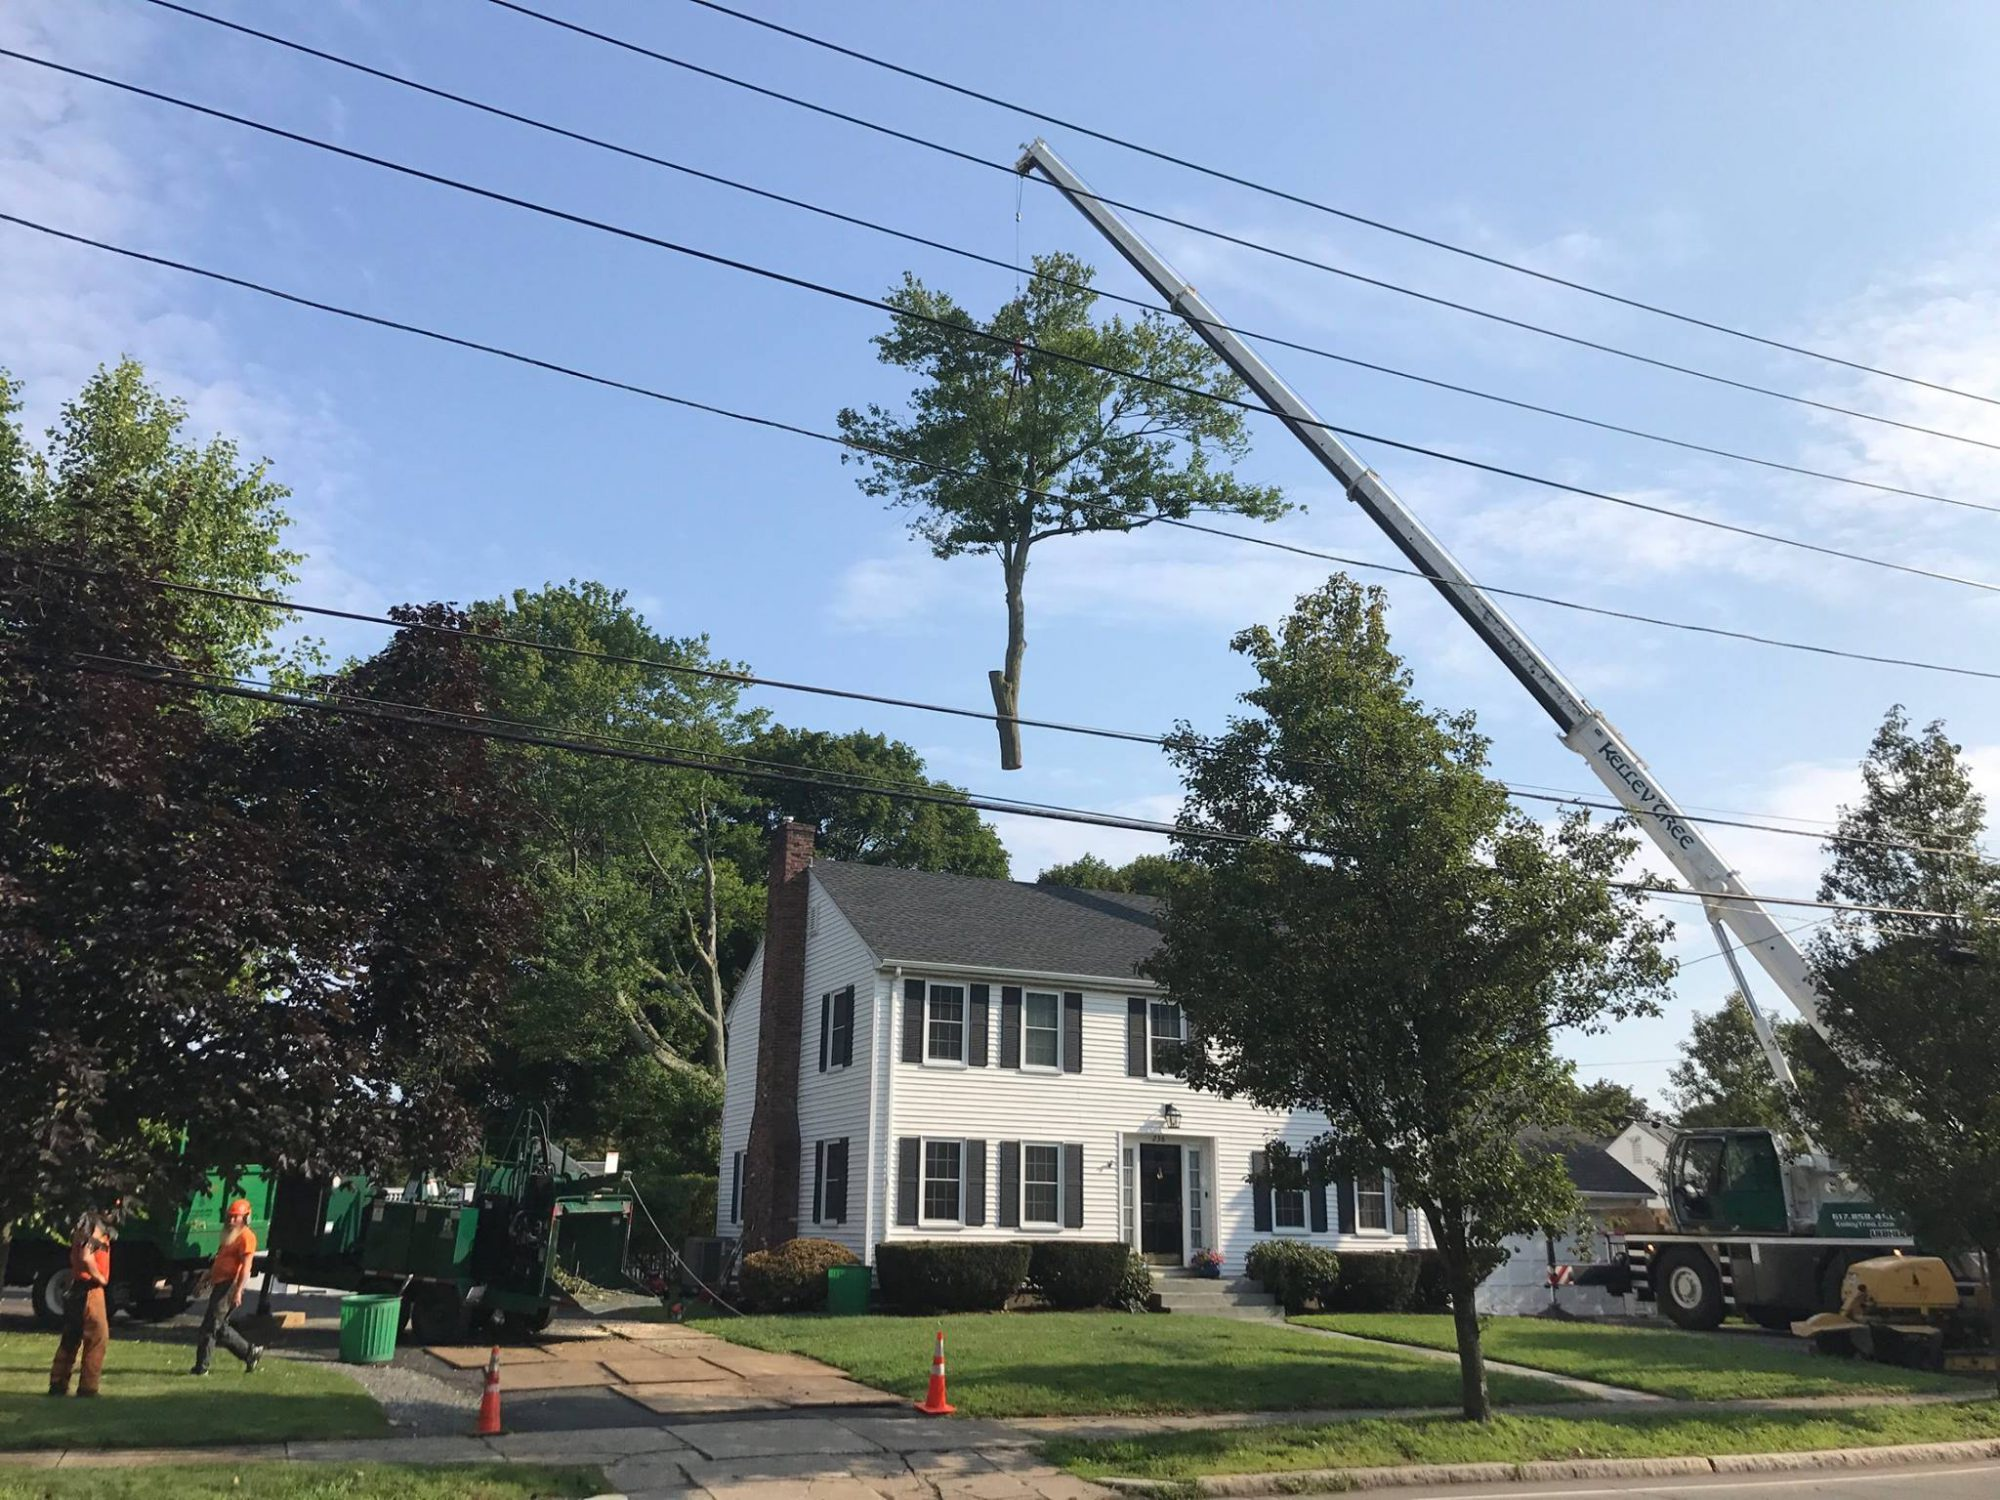 tree removal equipment removes damaged tree from lawn